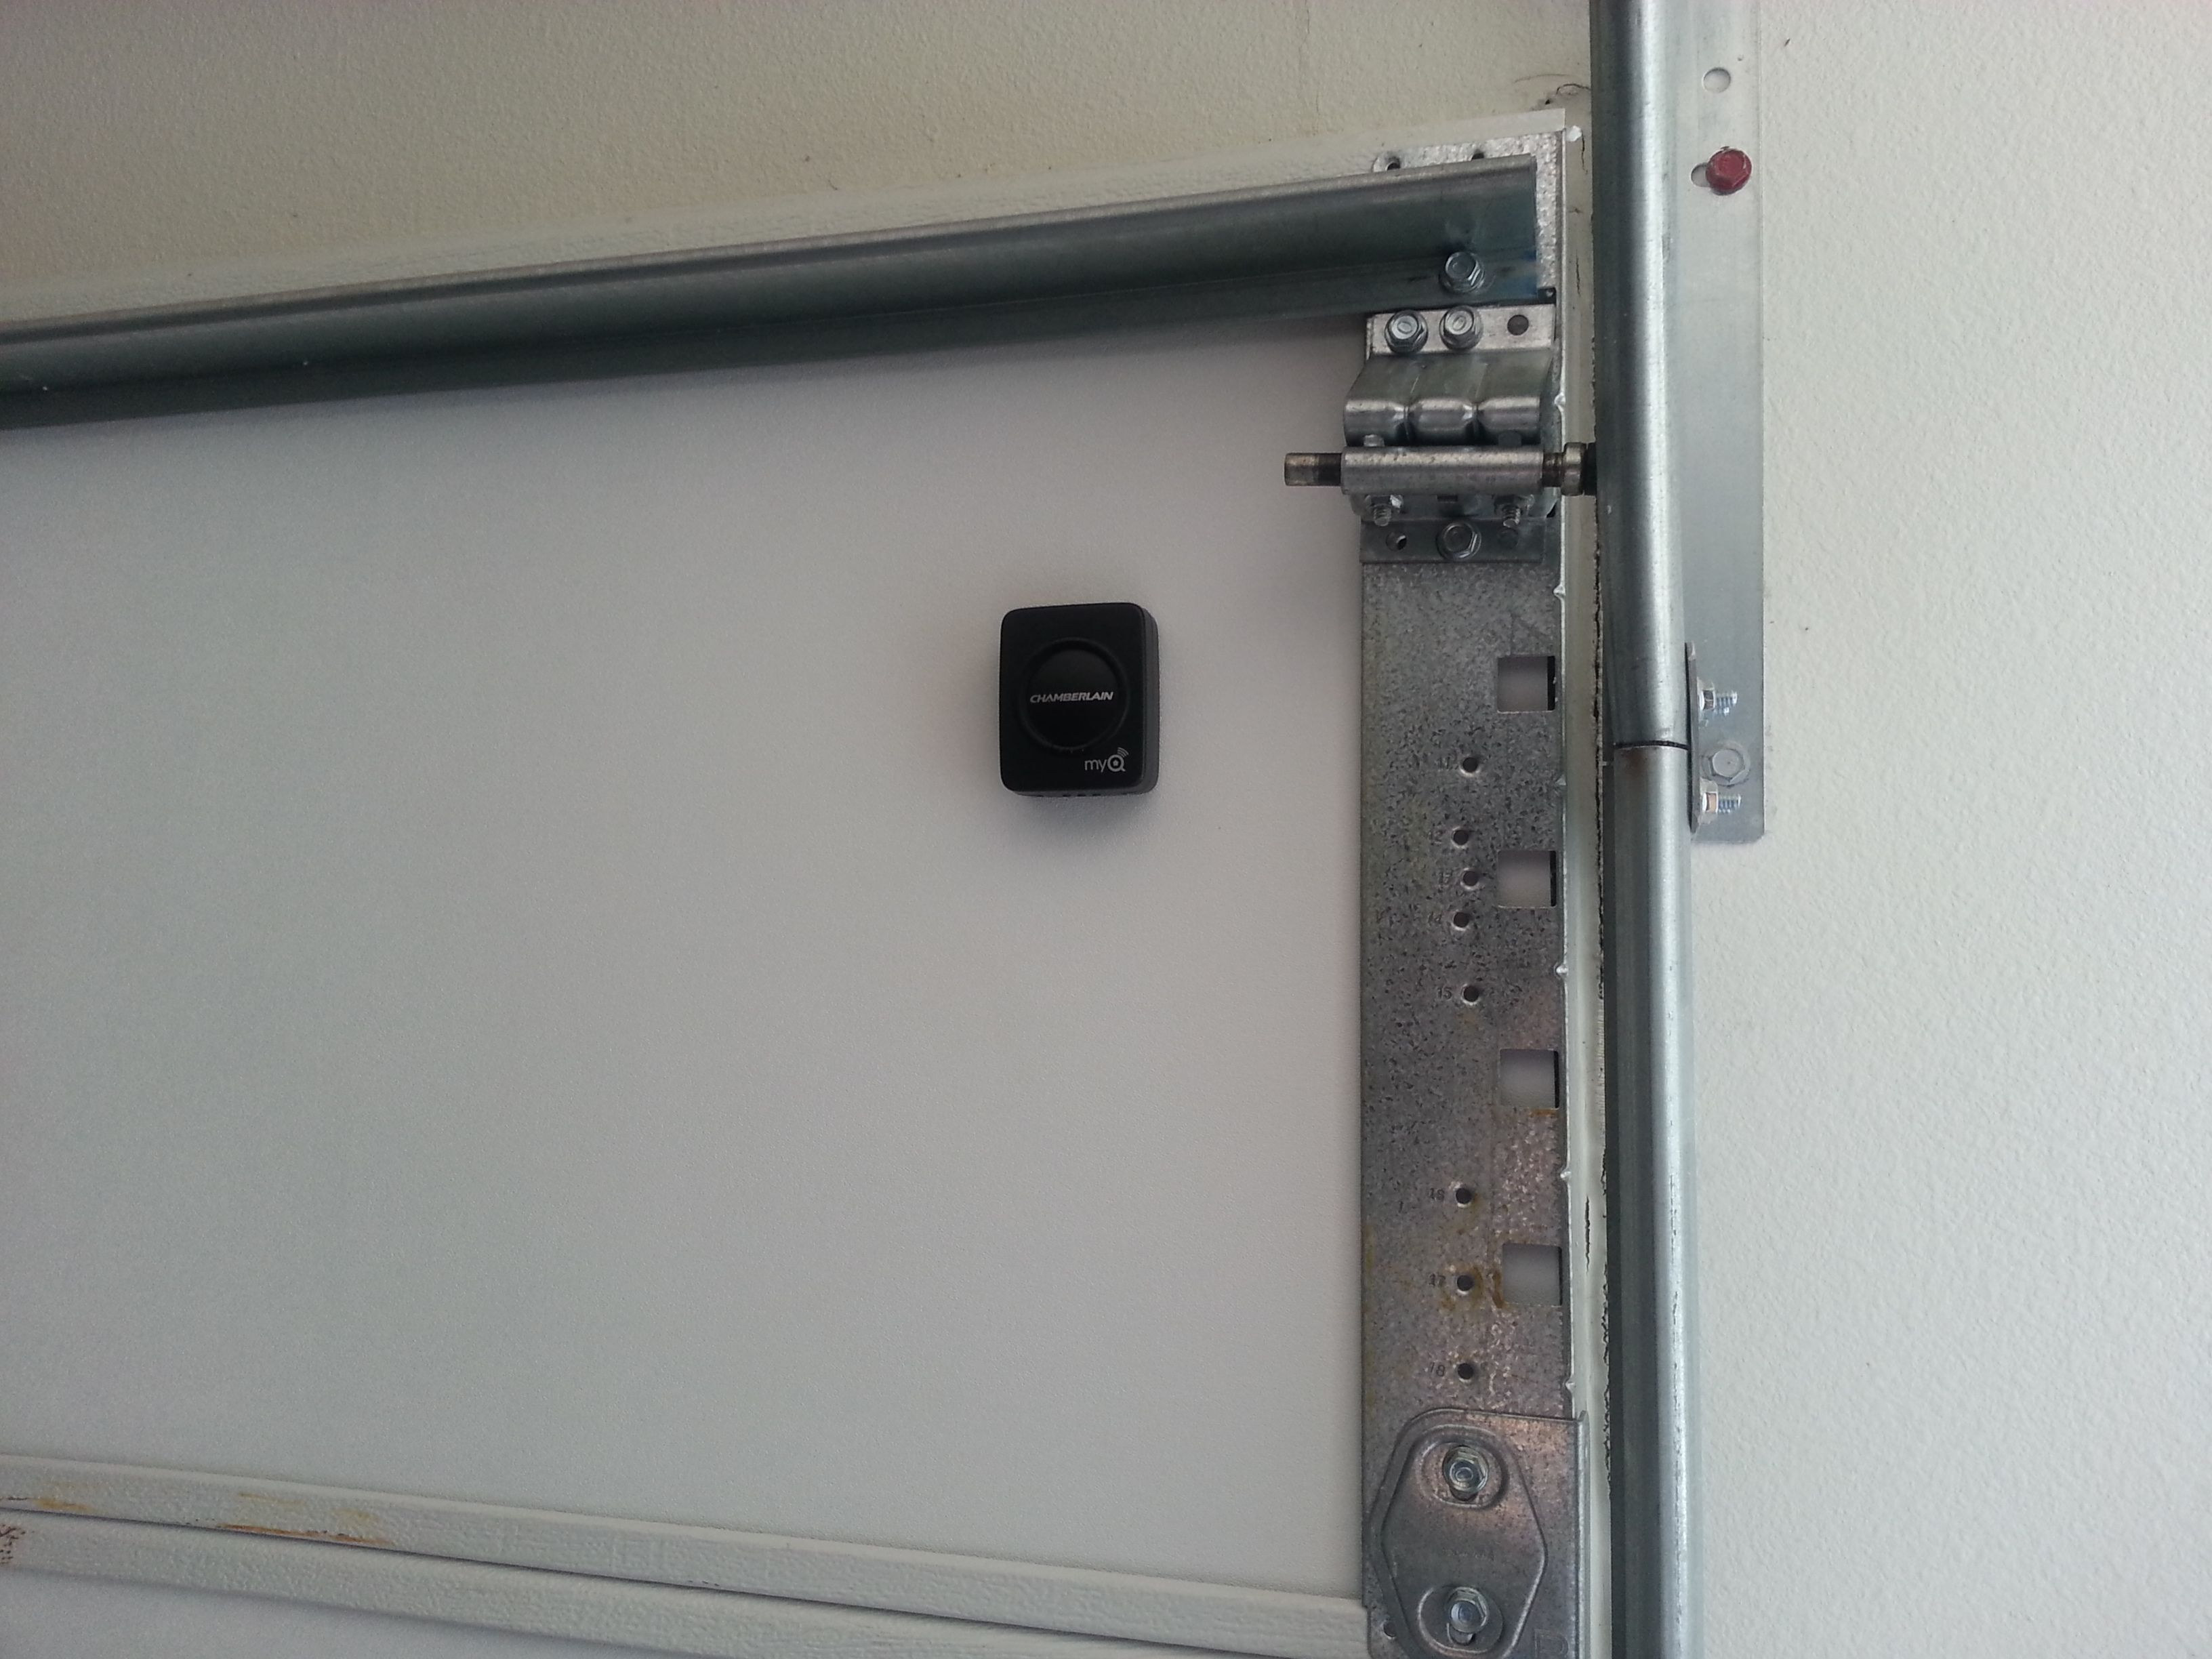 sensor to wageuzi out build into doors image open garage turn door room how that